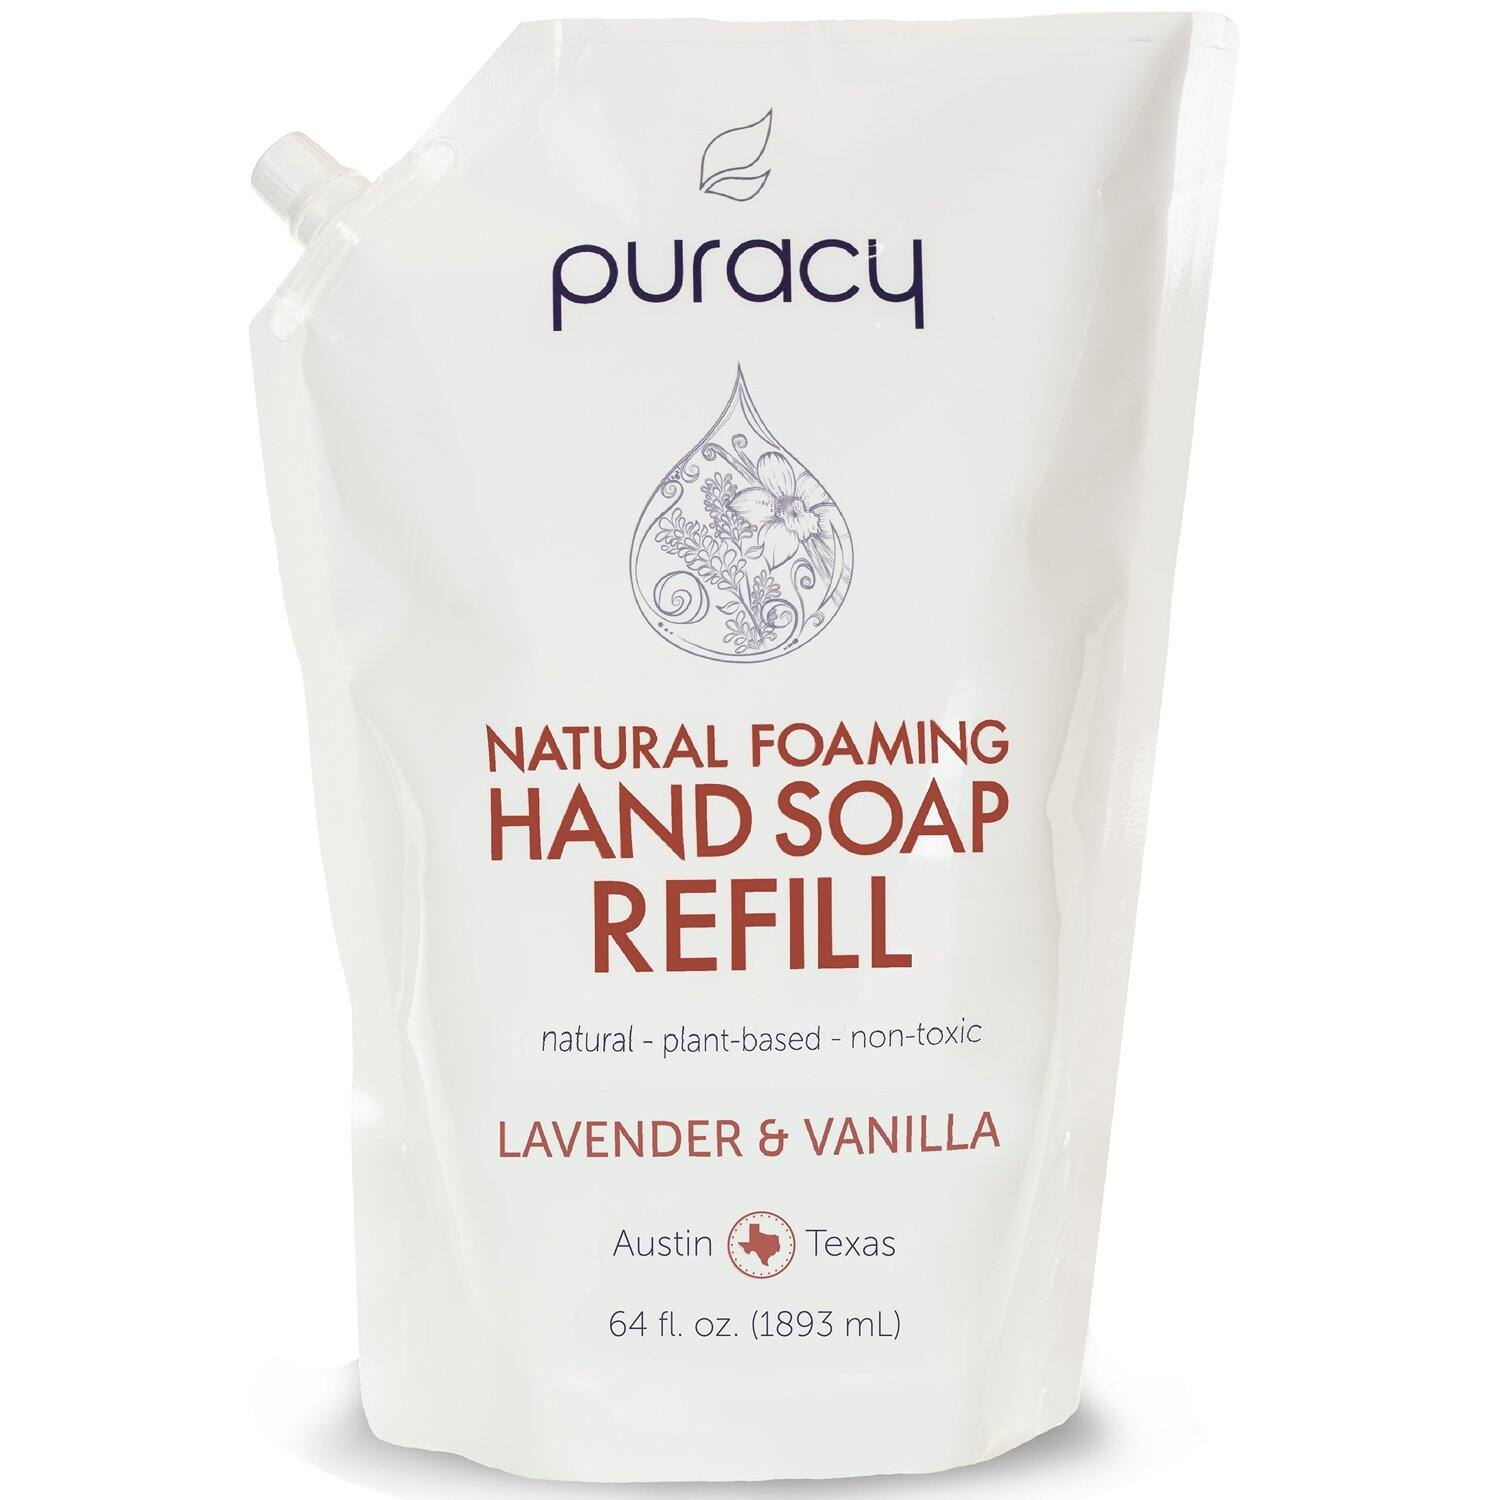 Puracy soap refills BOGO free. $10 each after discount.